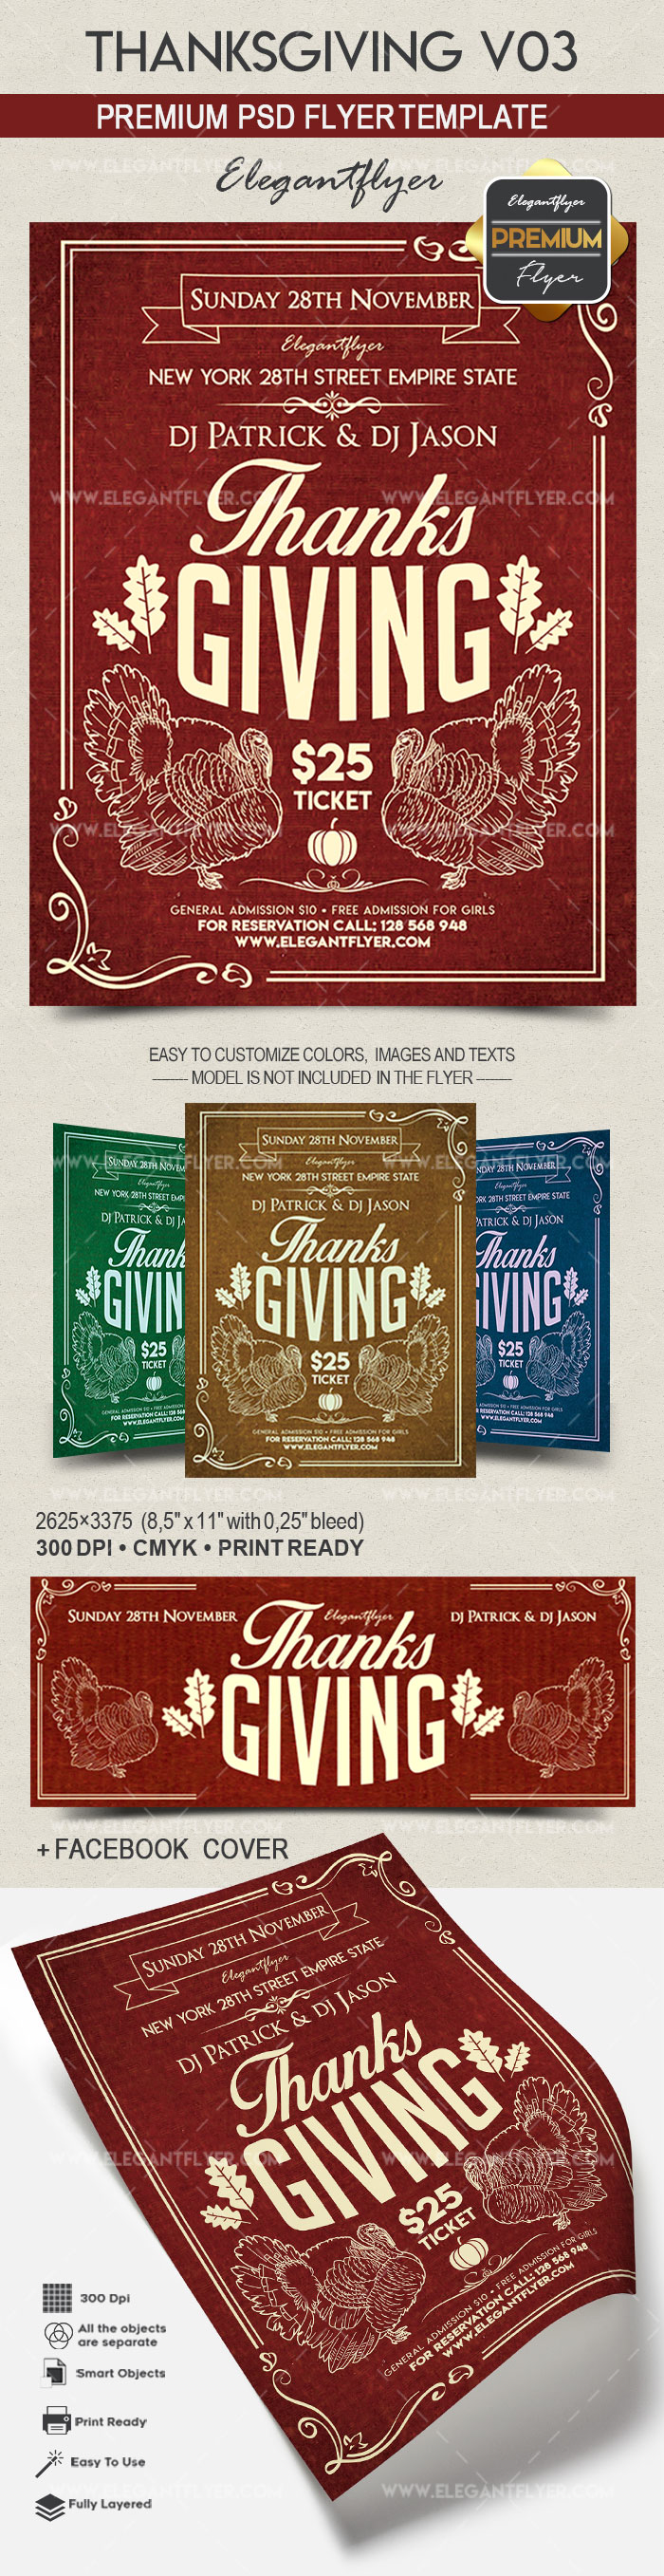 Thanksgiving V03 – Flyer PSD Template